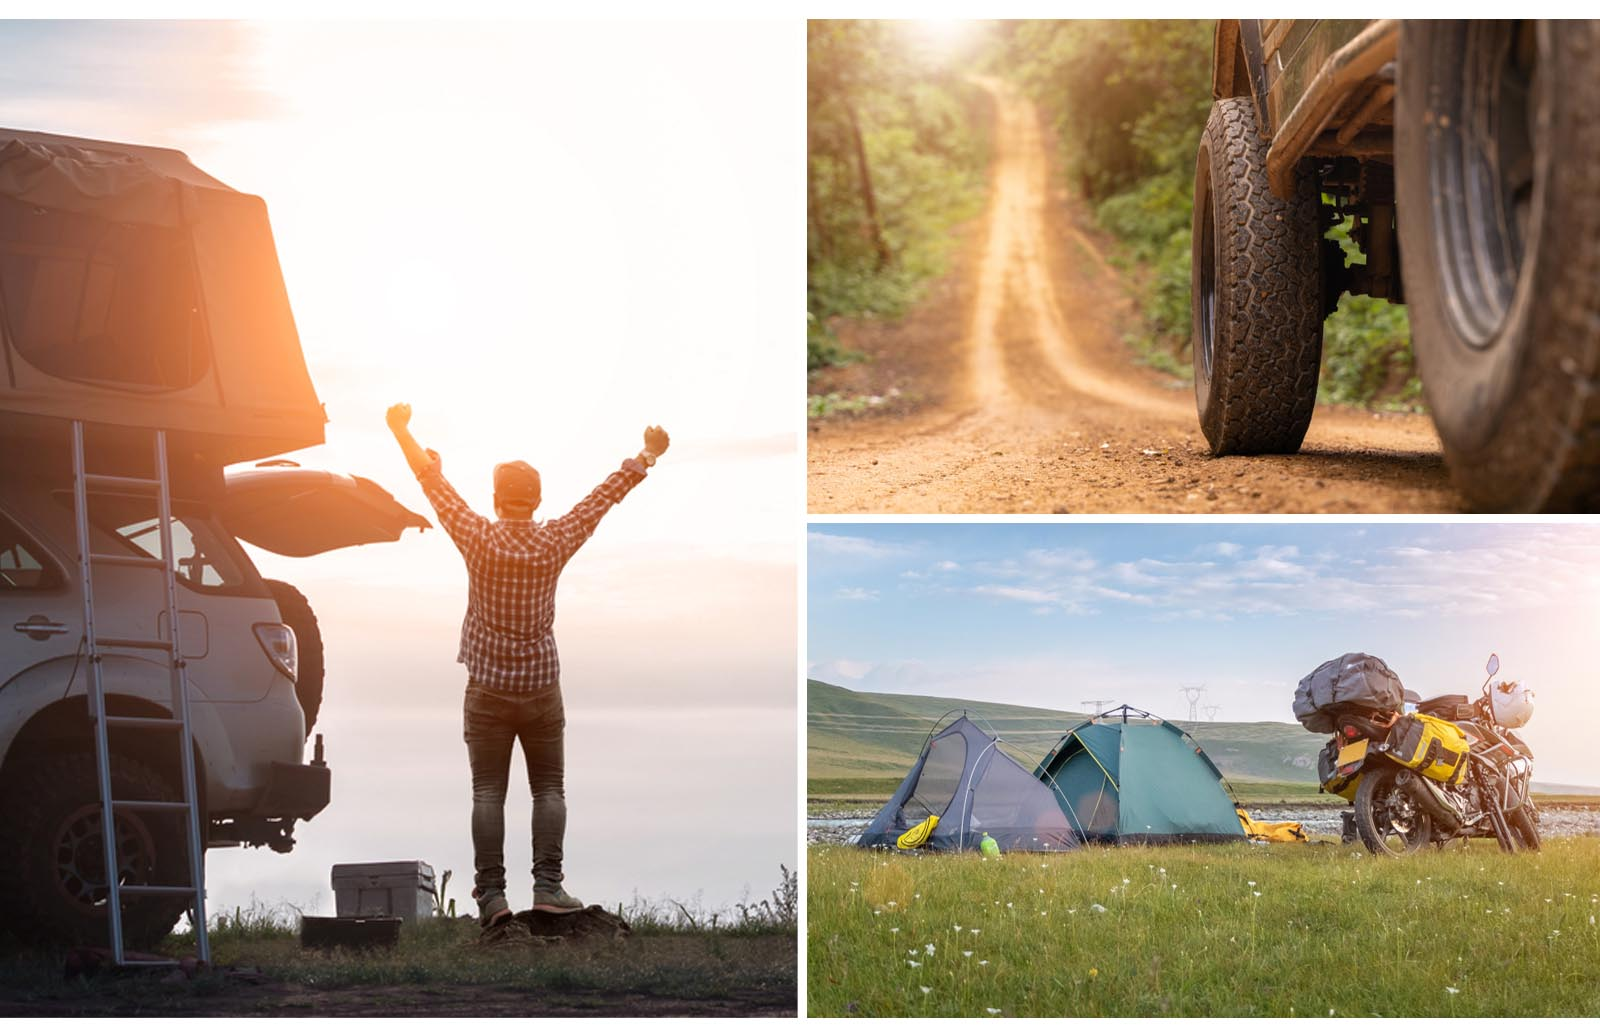 off road camping experiences